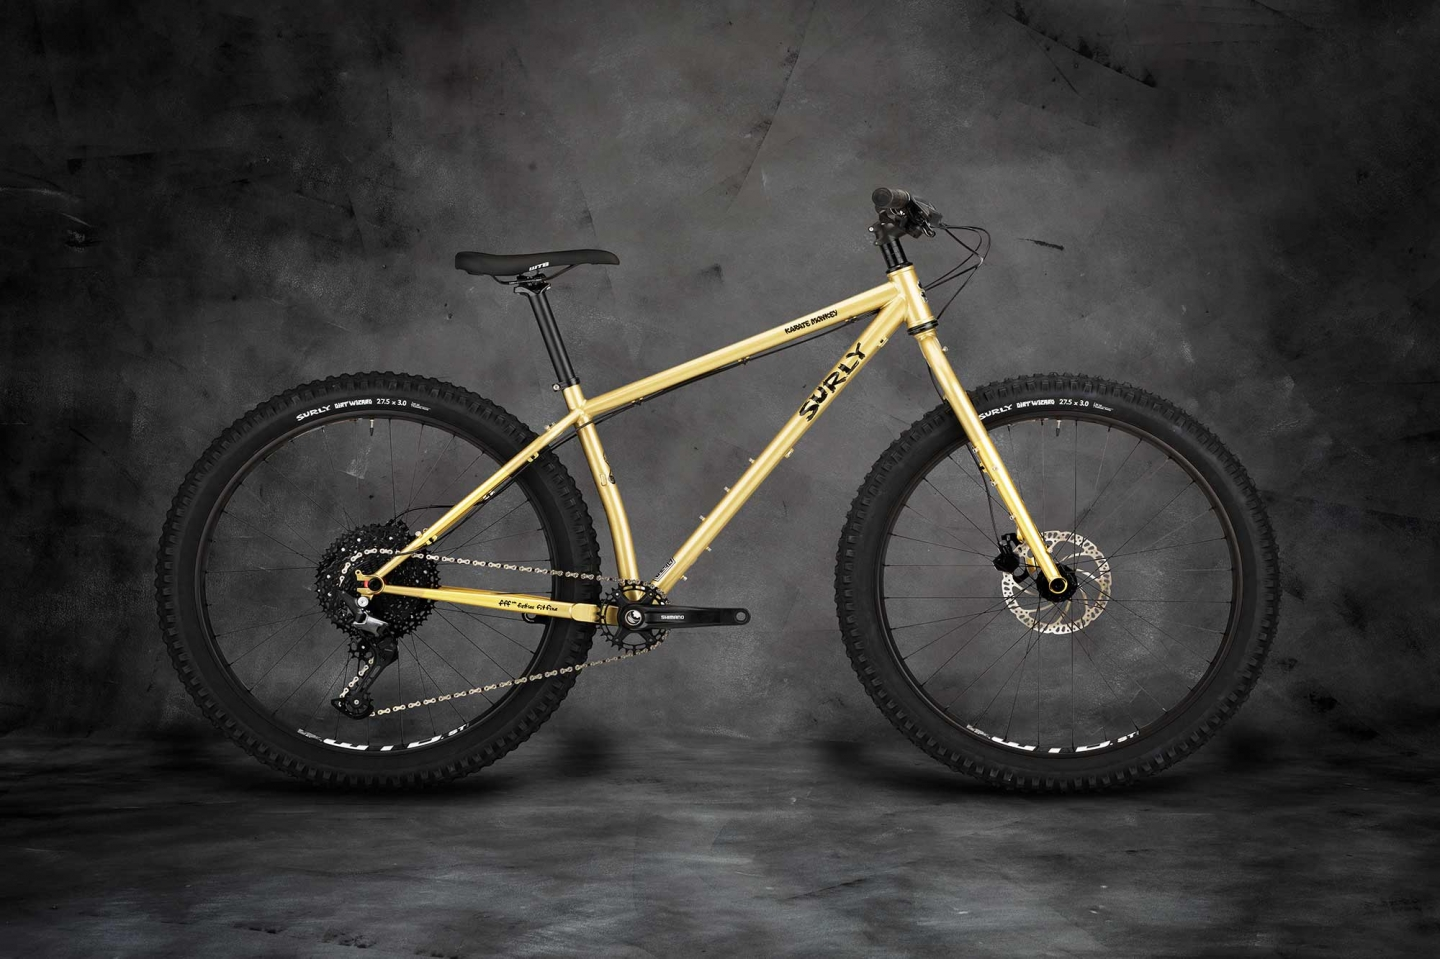 Karate Monkey complete bike, Fool's Gold